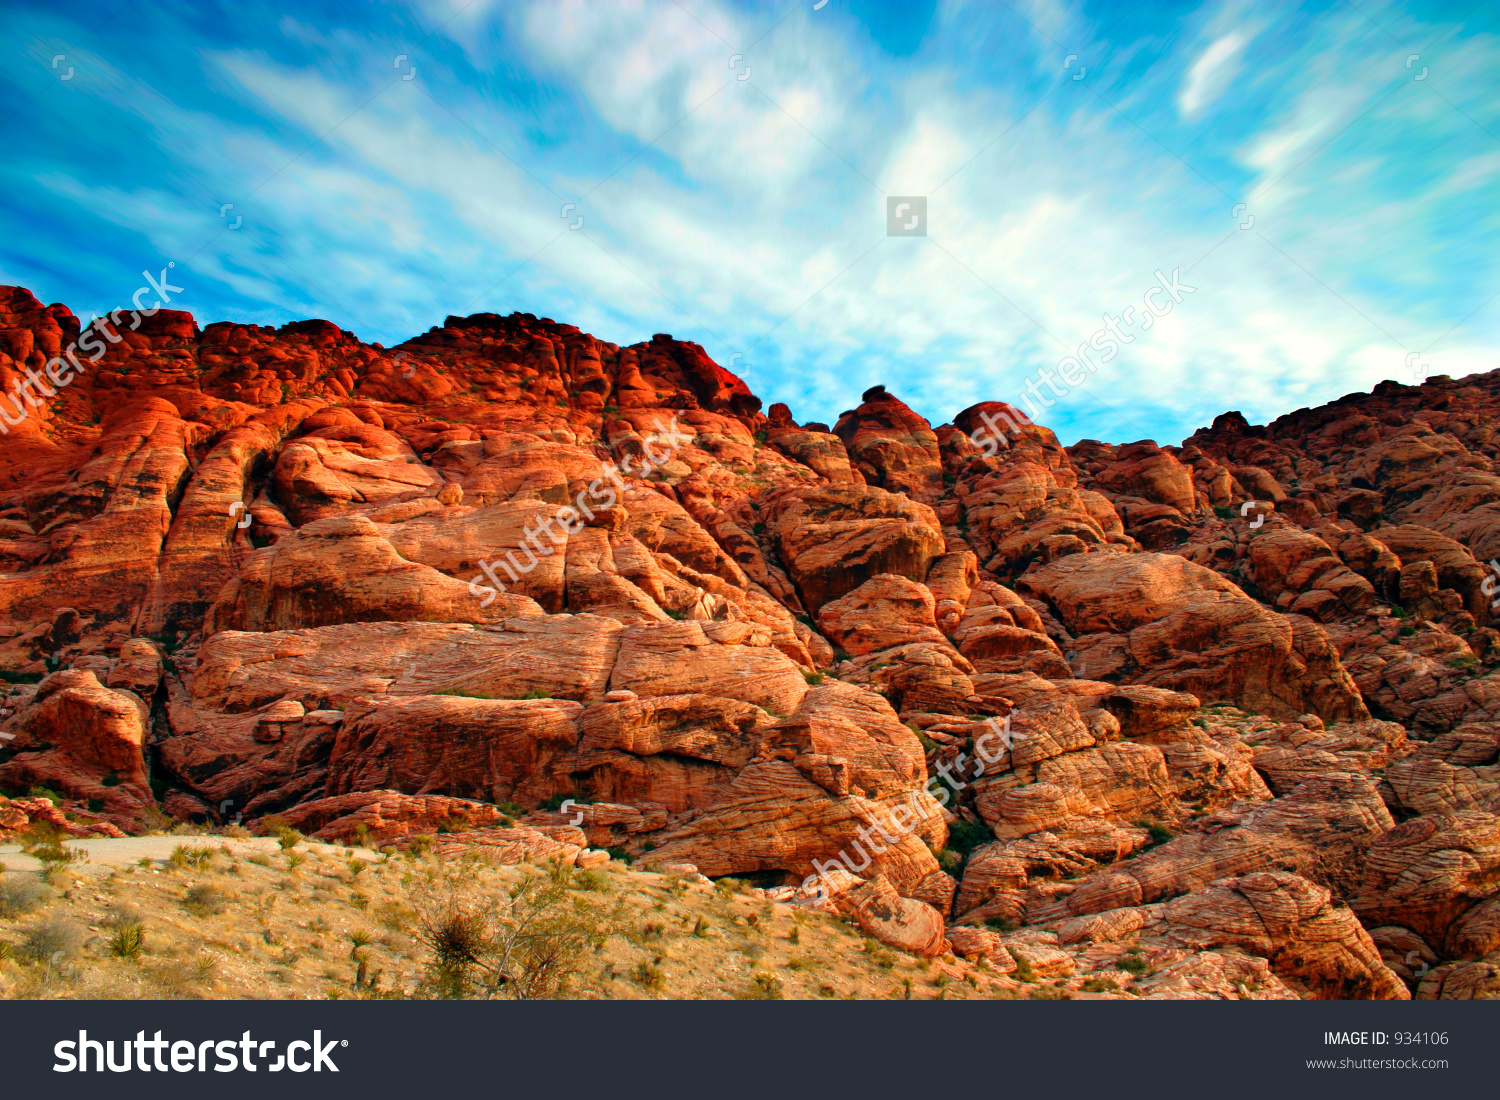 Red Rock Canyon clipart #1, Download drawings